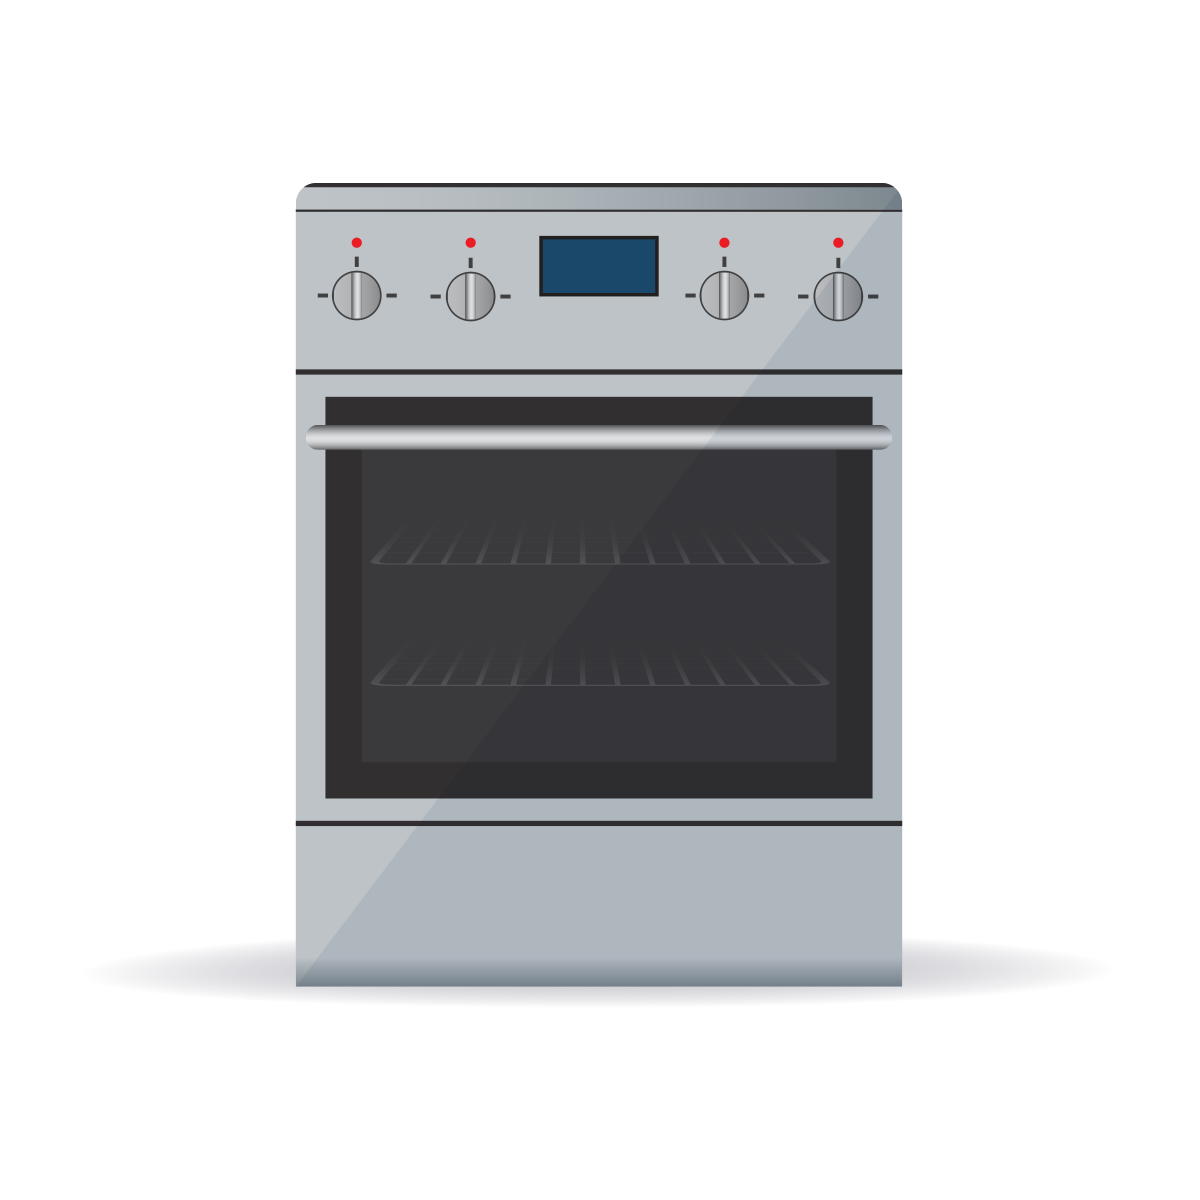 Stainless steal oven illustration